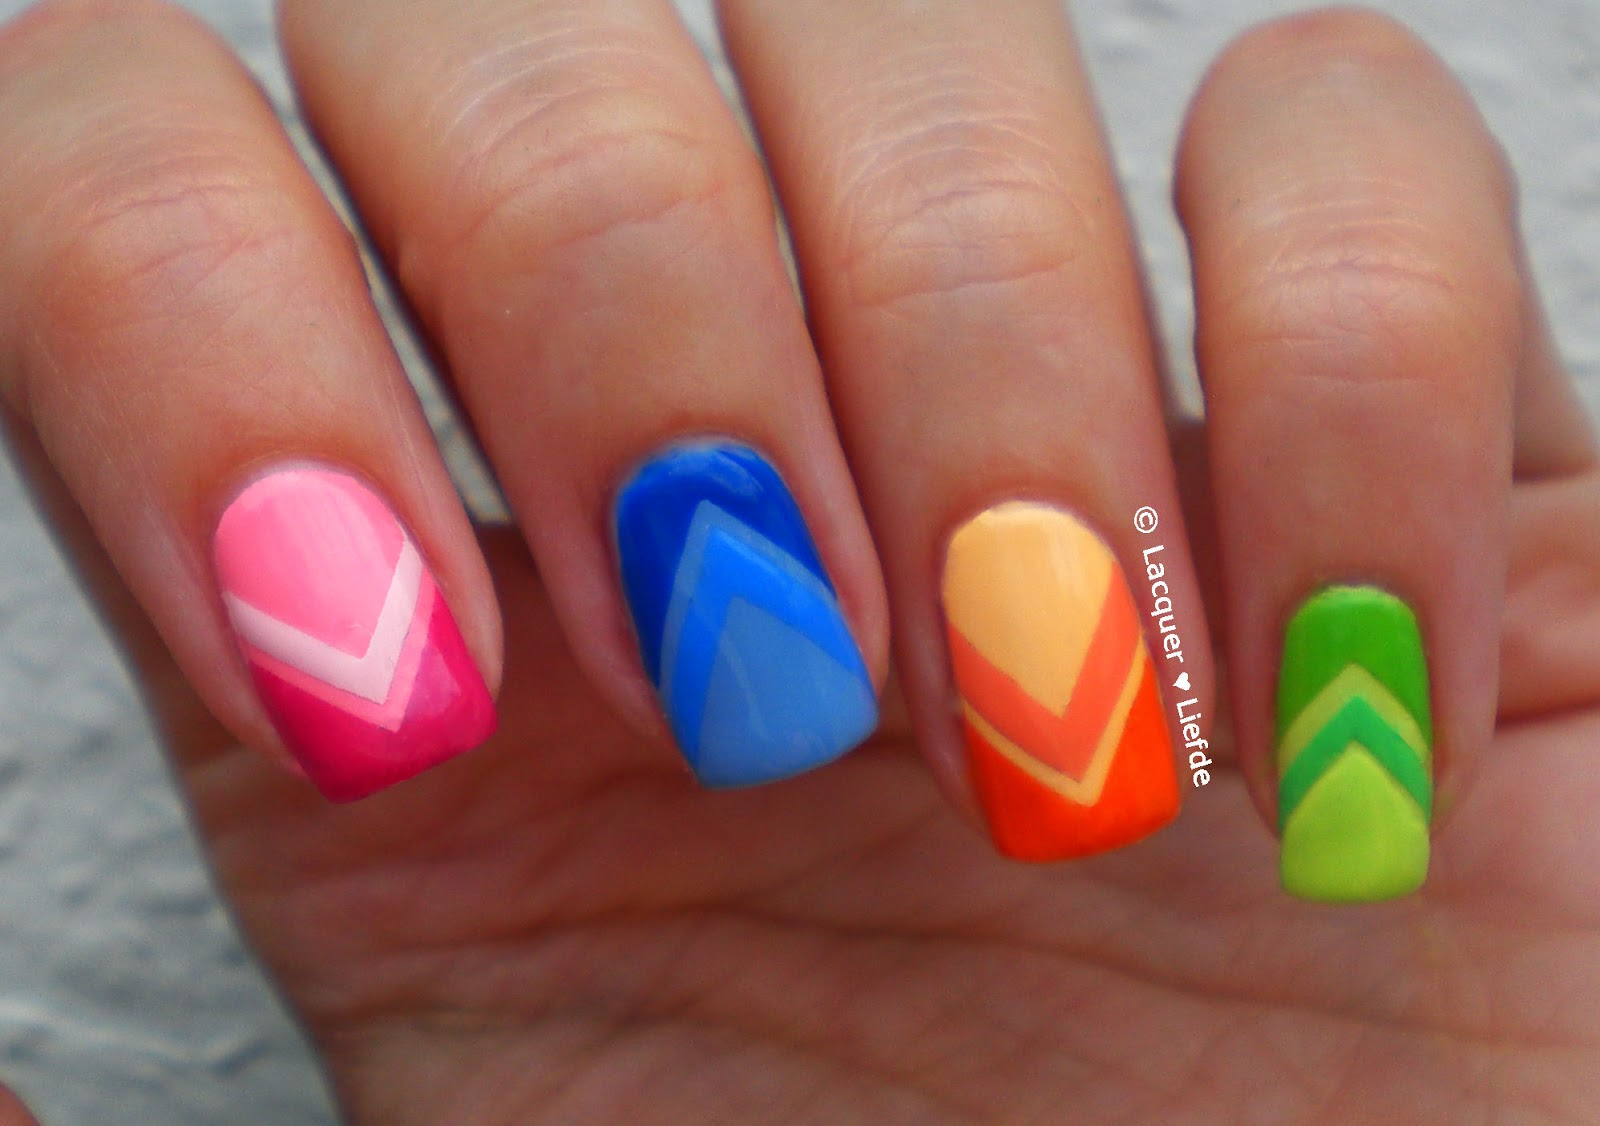 Maybelline Color Show Bleached Neons Skittle Nails